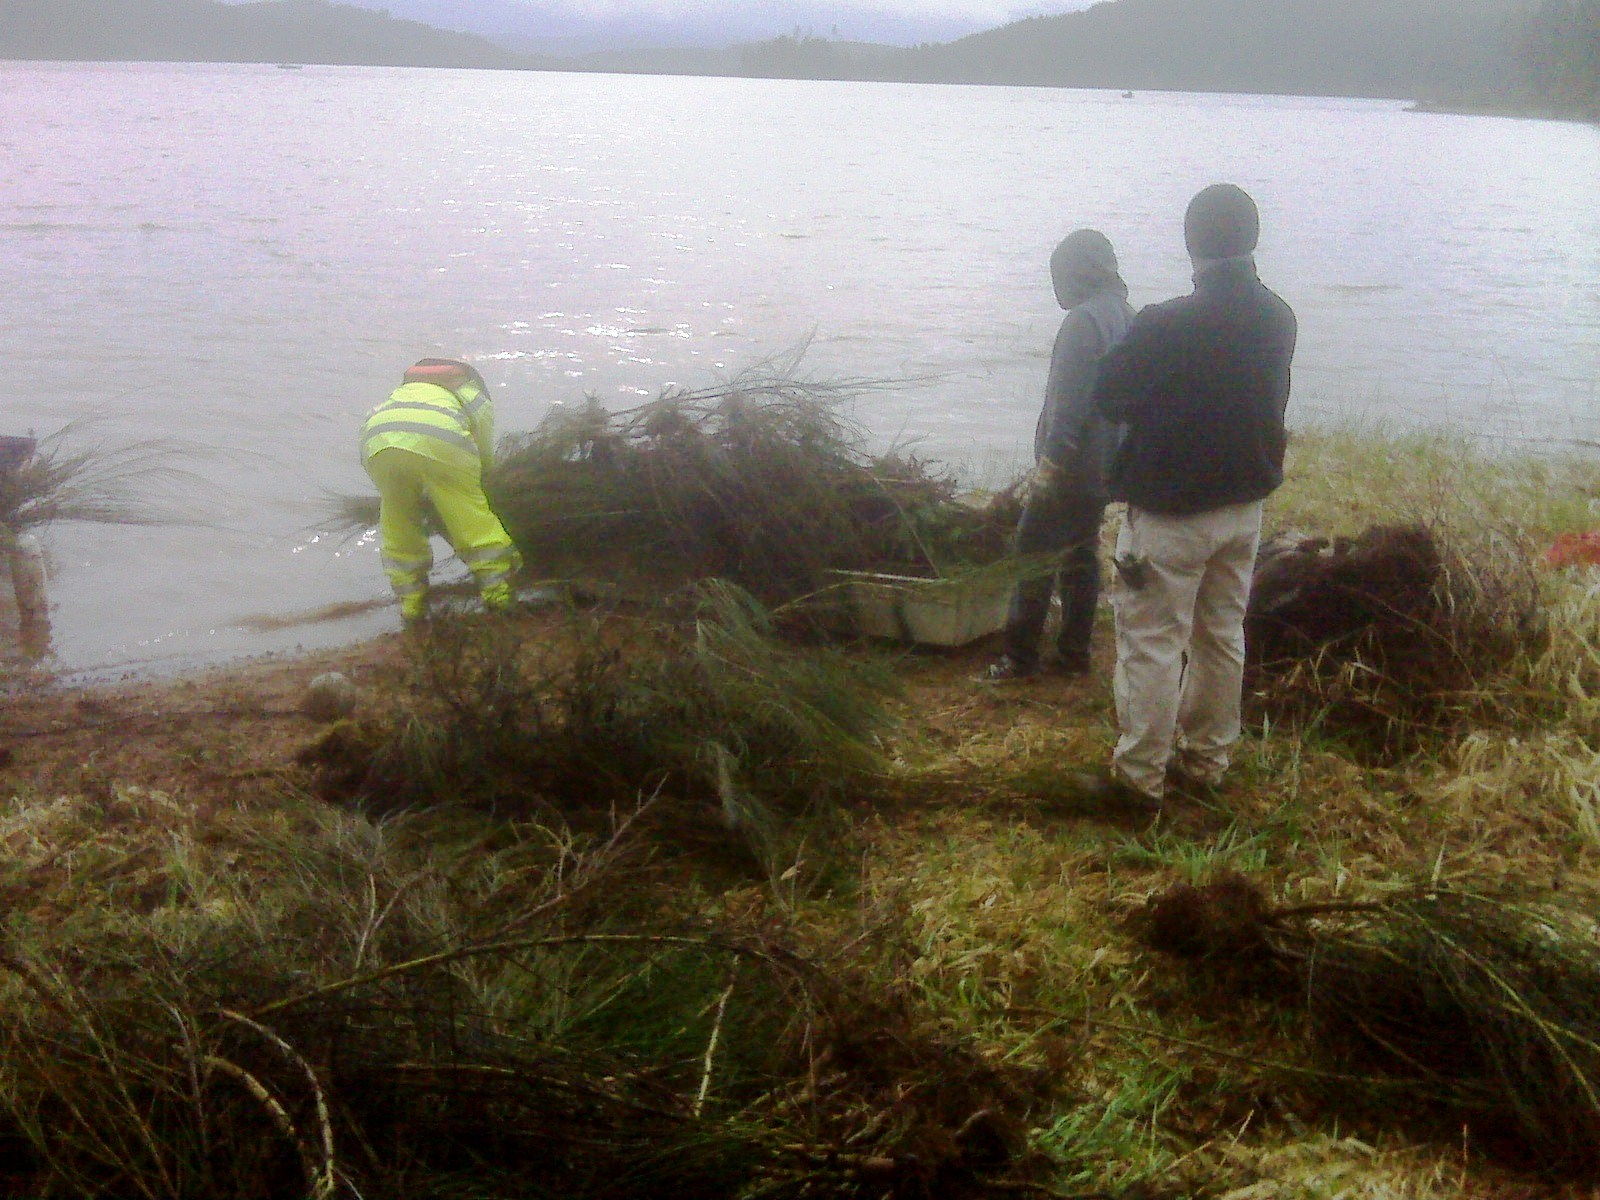 Community Service - Hagg Lake Scotch Broom Removal